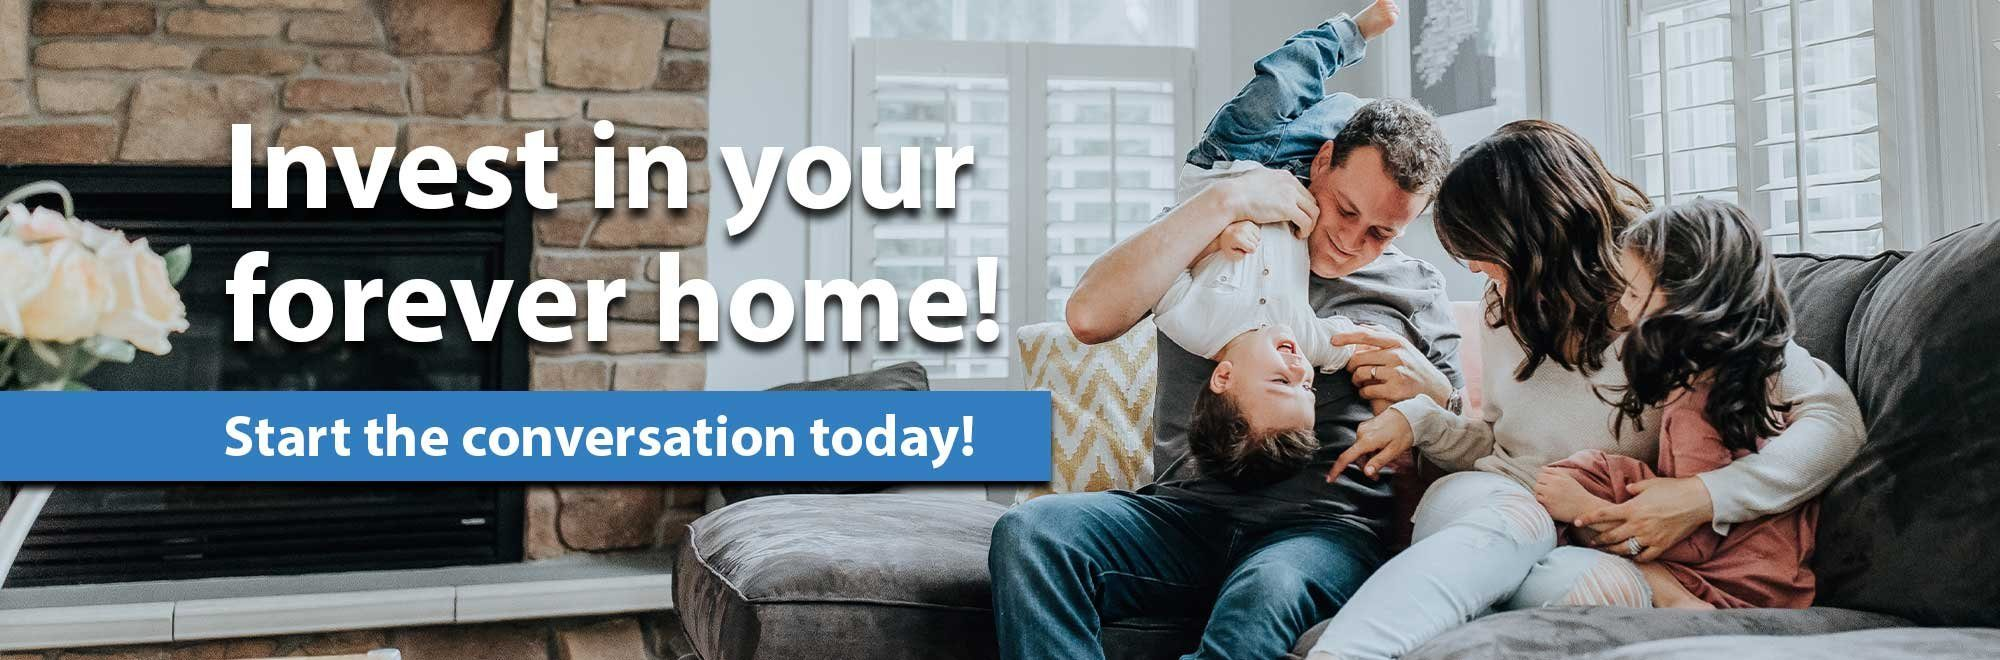 Invest in your forever home. Start the conversation today!